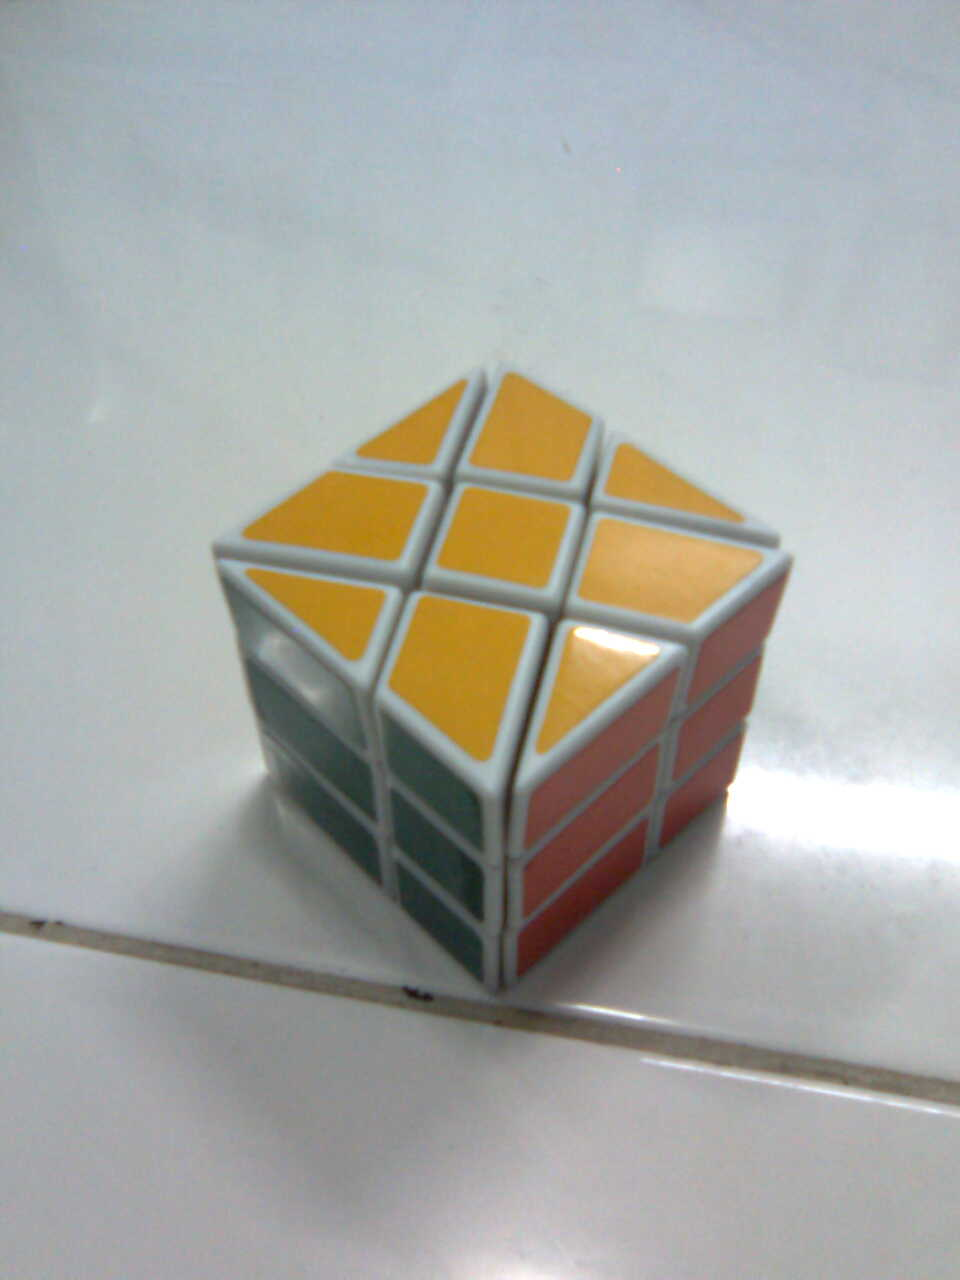 Cube Mechanisms -  the Windmill Cube and the Super Square-1